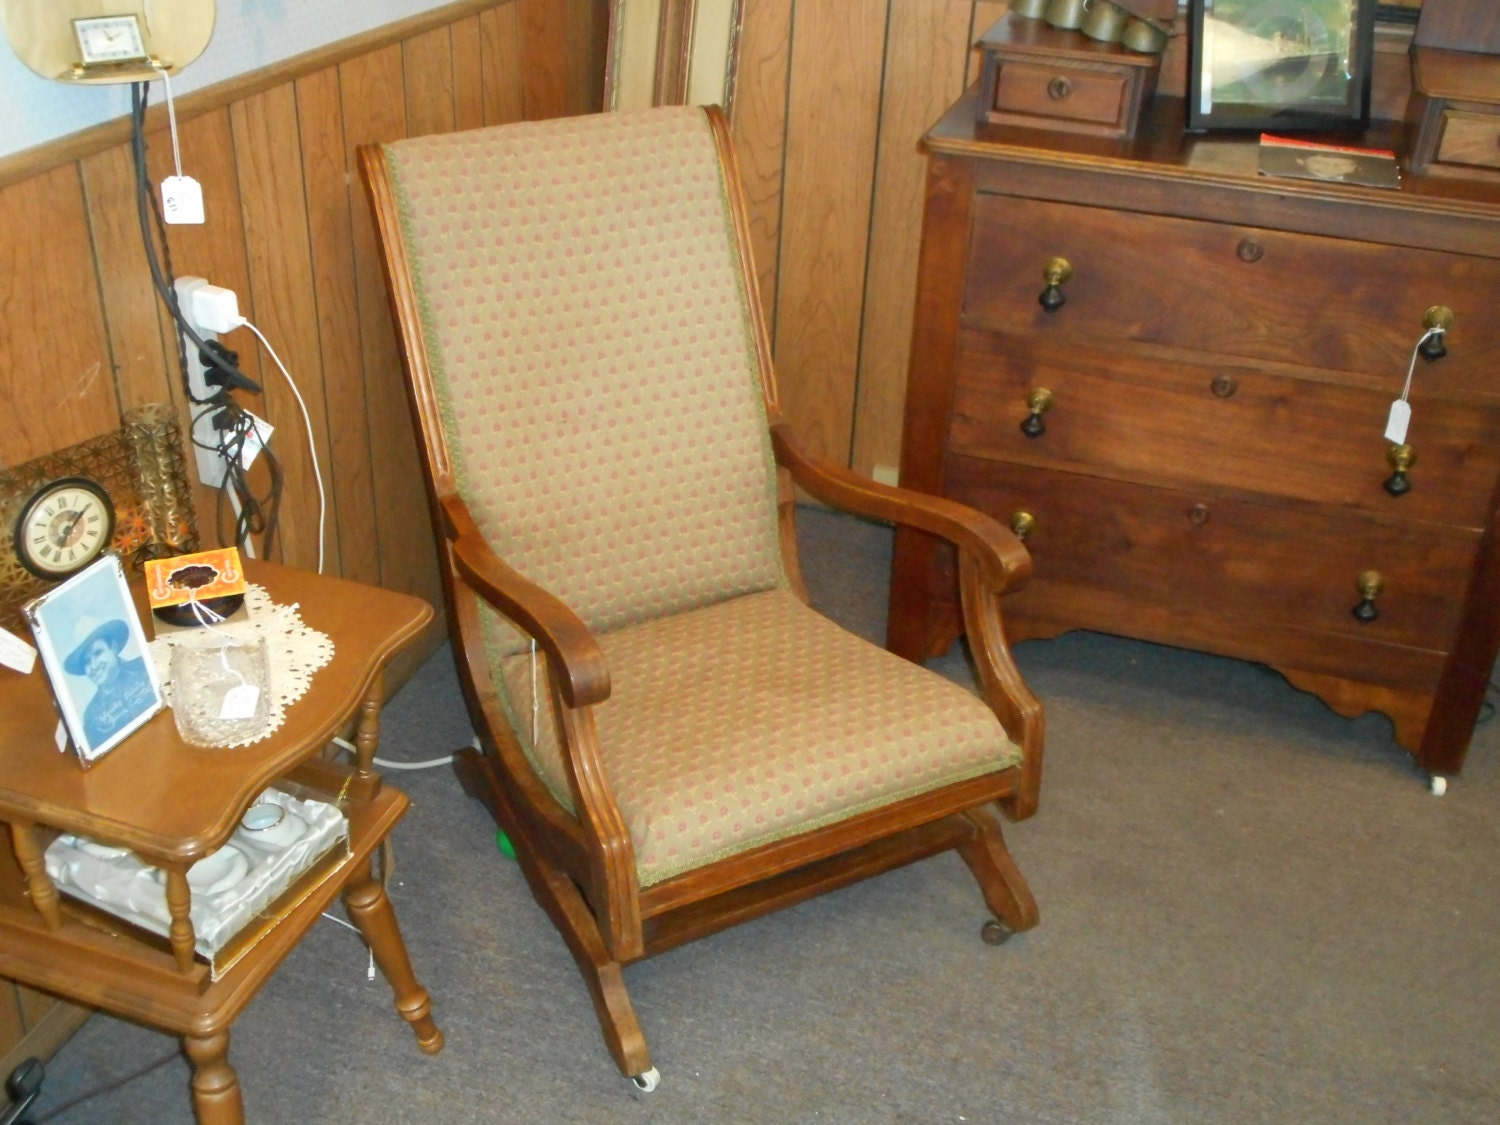 Antique rocking chair very comfortable by neighborhoodresale - Rocking chair comfortable ...